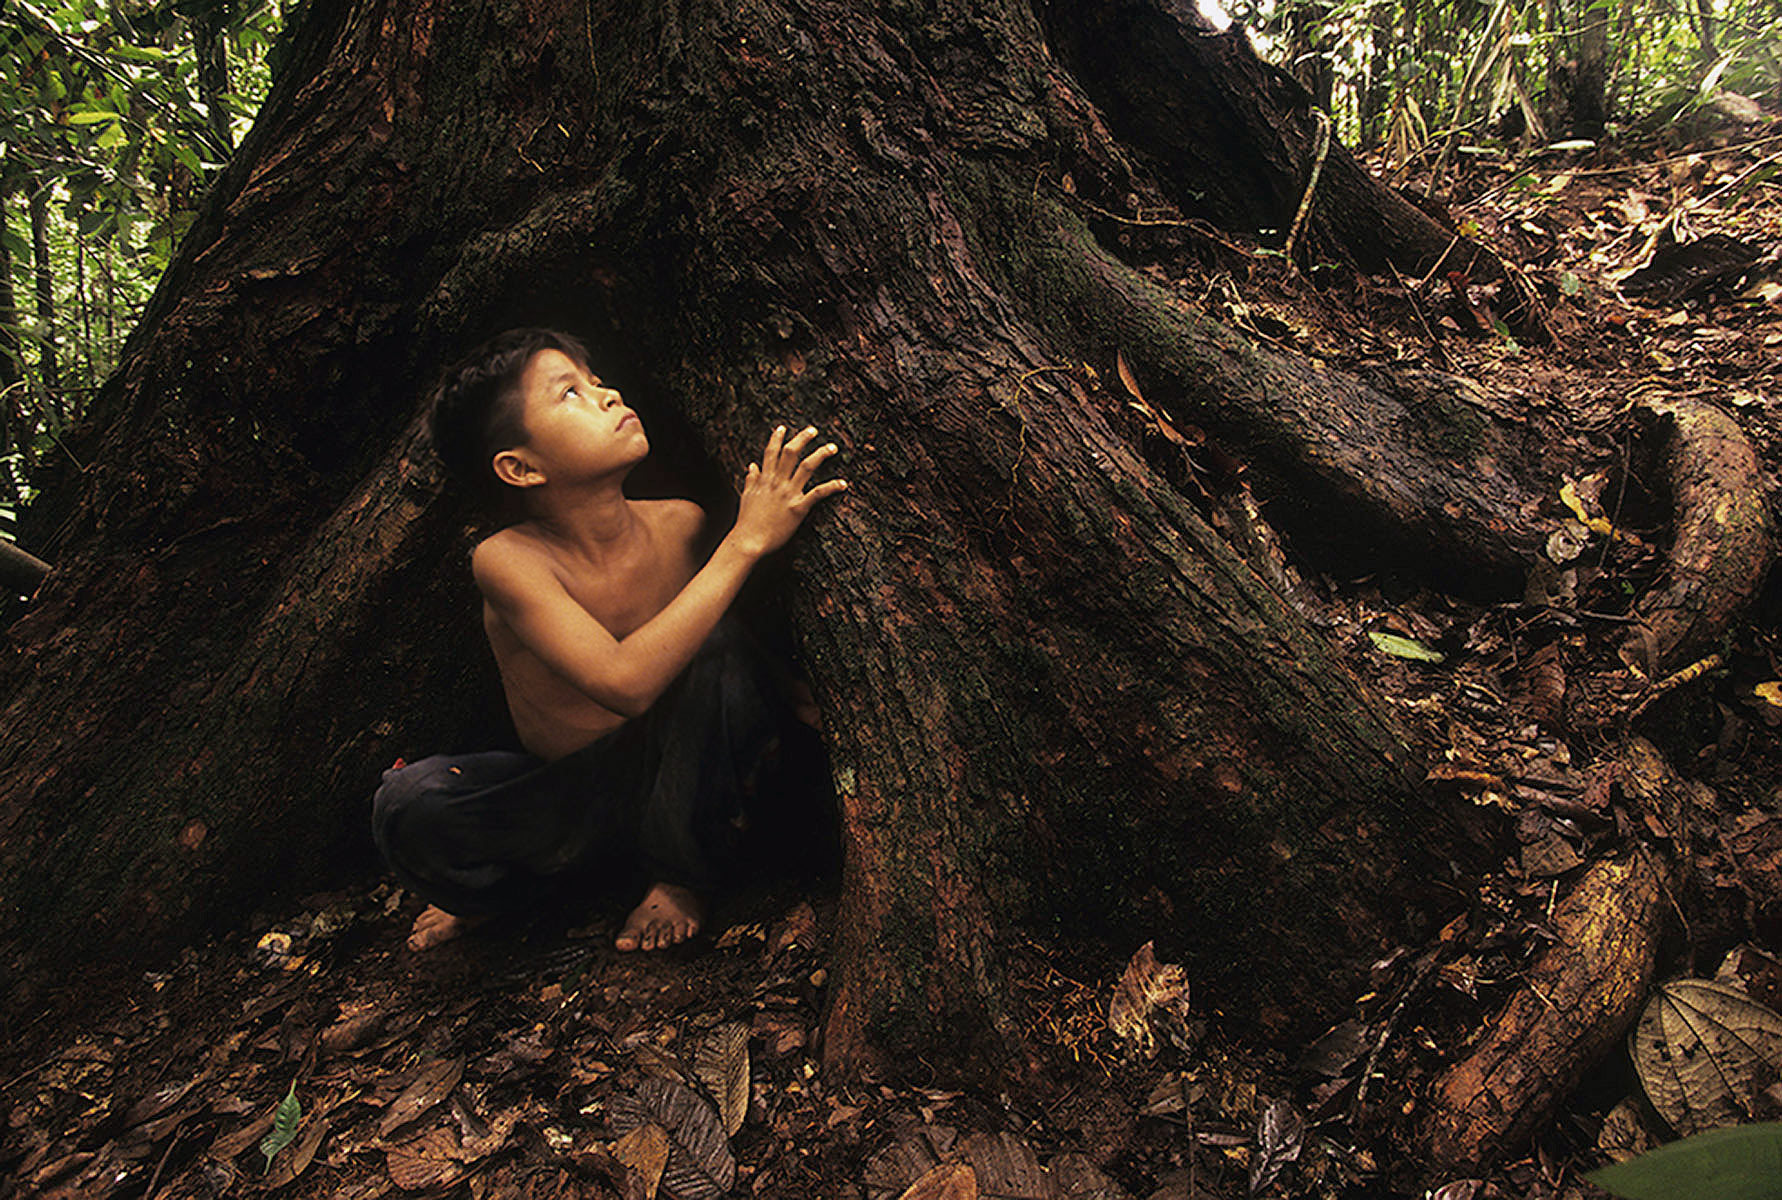 Looking to the future in the rainforest